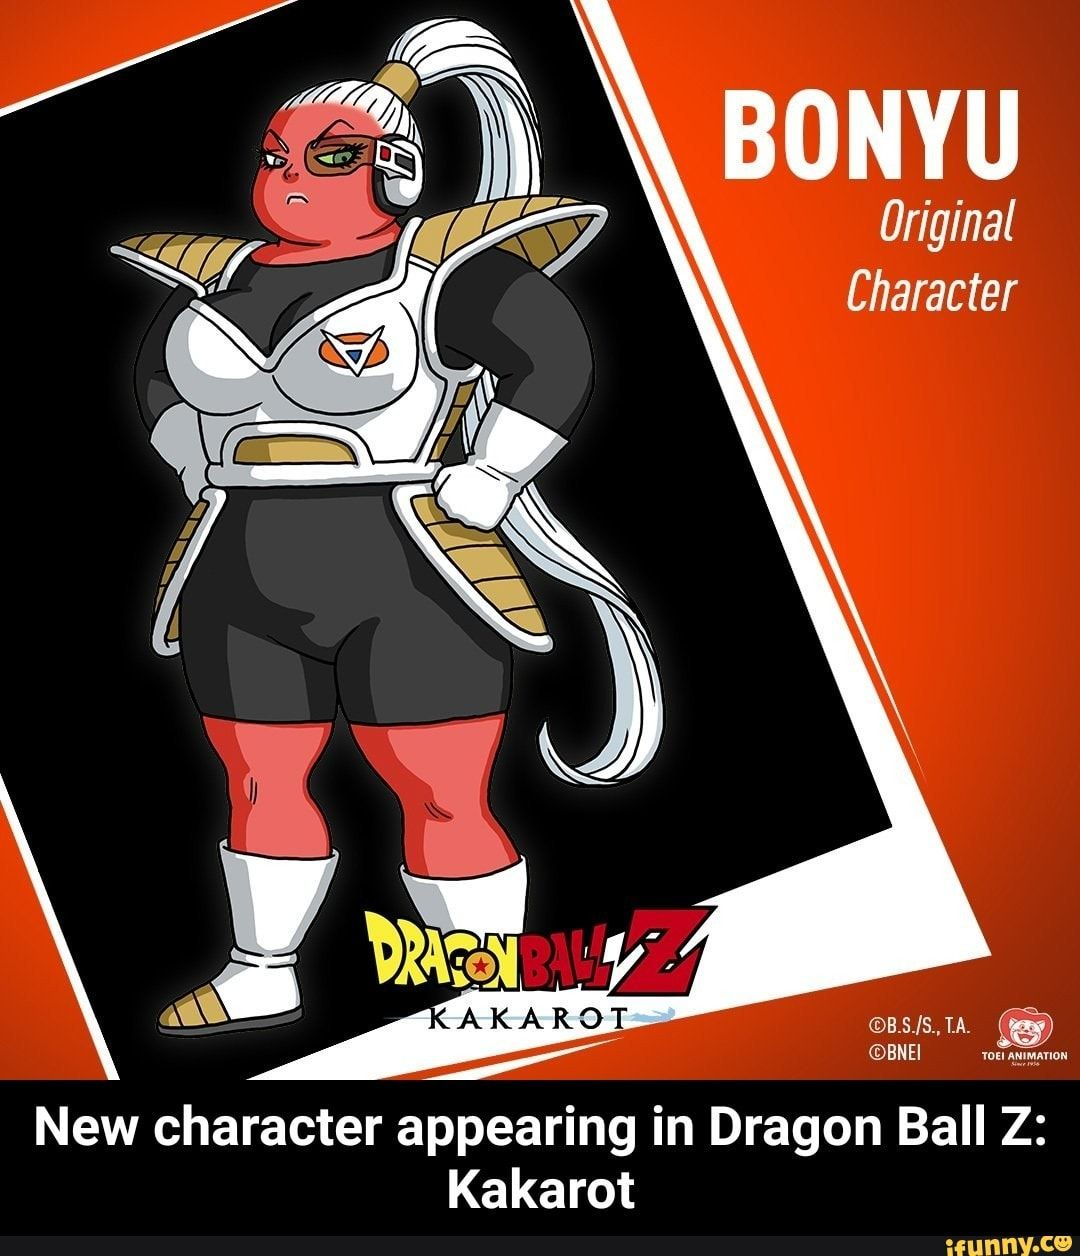 Bonyu Original Character New Character Appearing In Dragon Ball Z